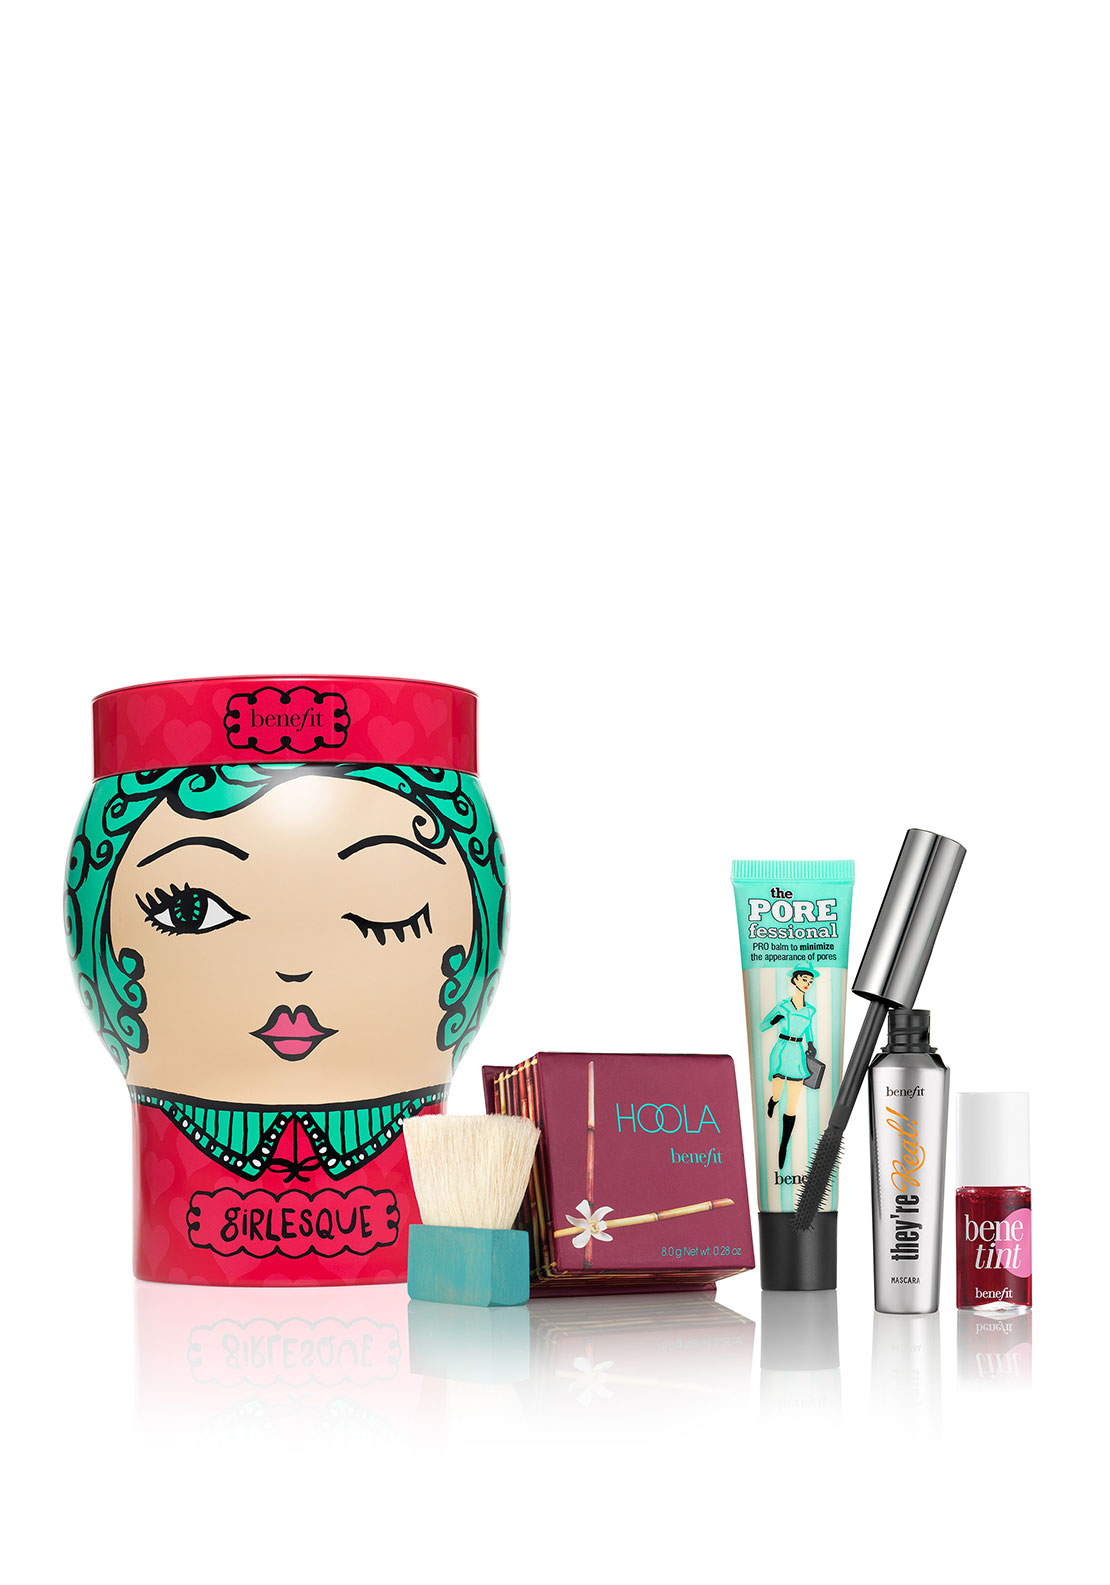 Benefit 'Girlsque' Gift Set